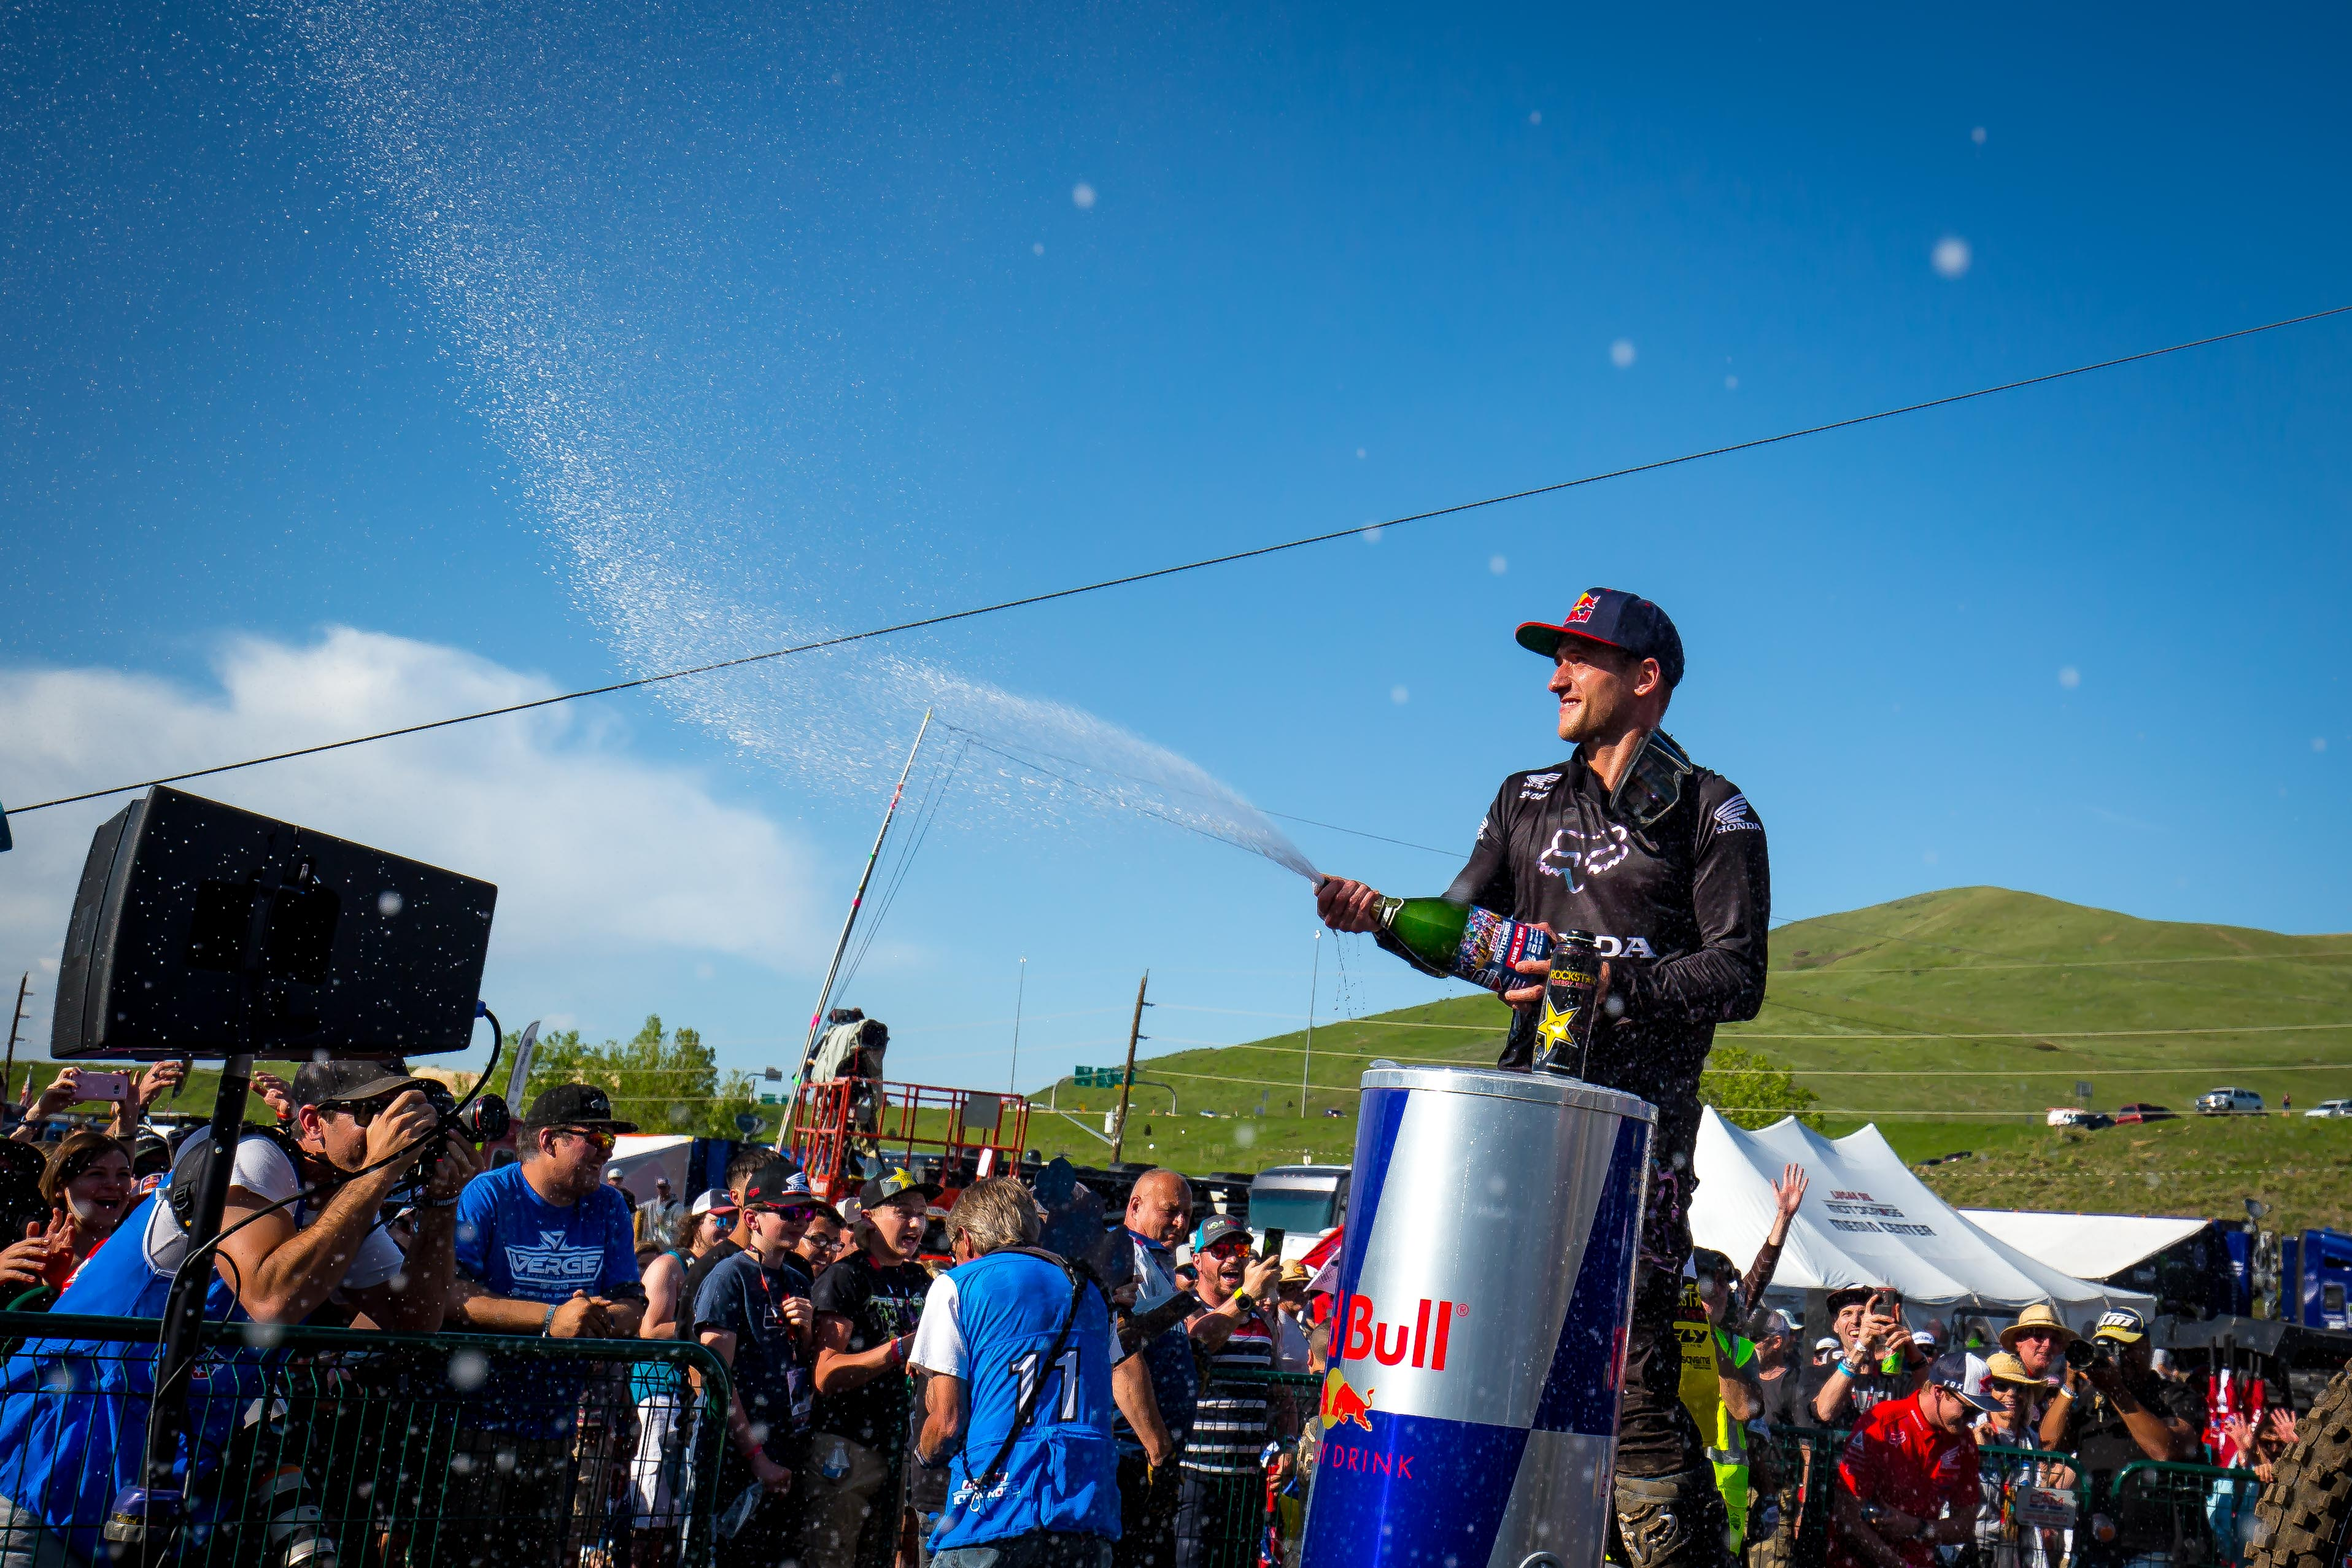 ROCZEN MAKES IT TWO FOR THREE AT THUNDER VALLEY